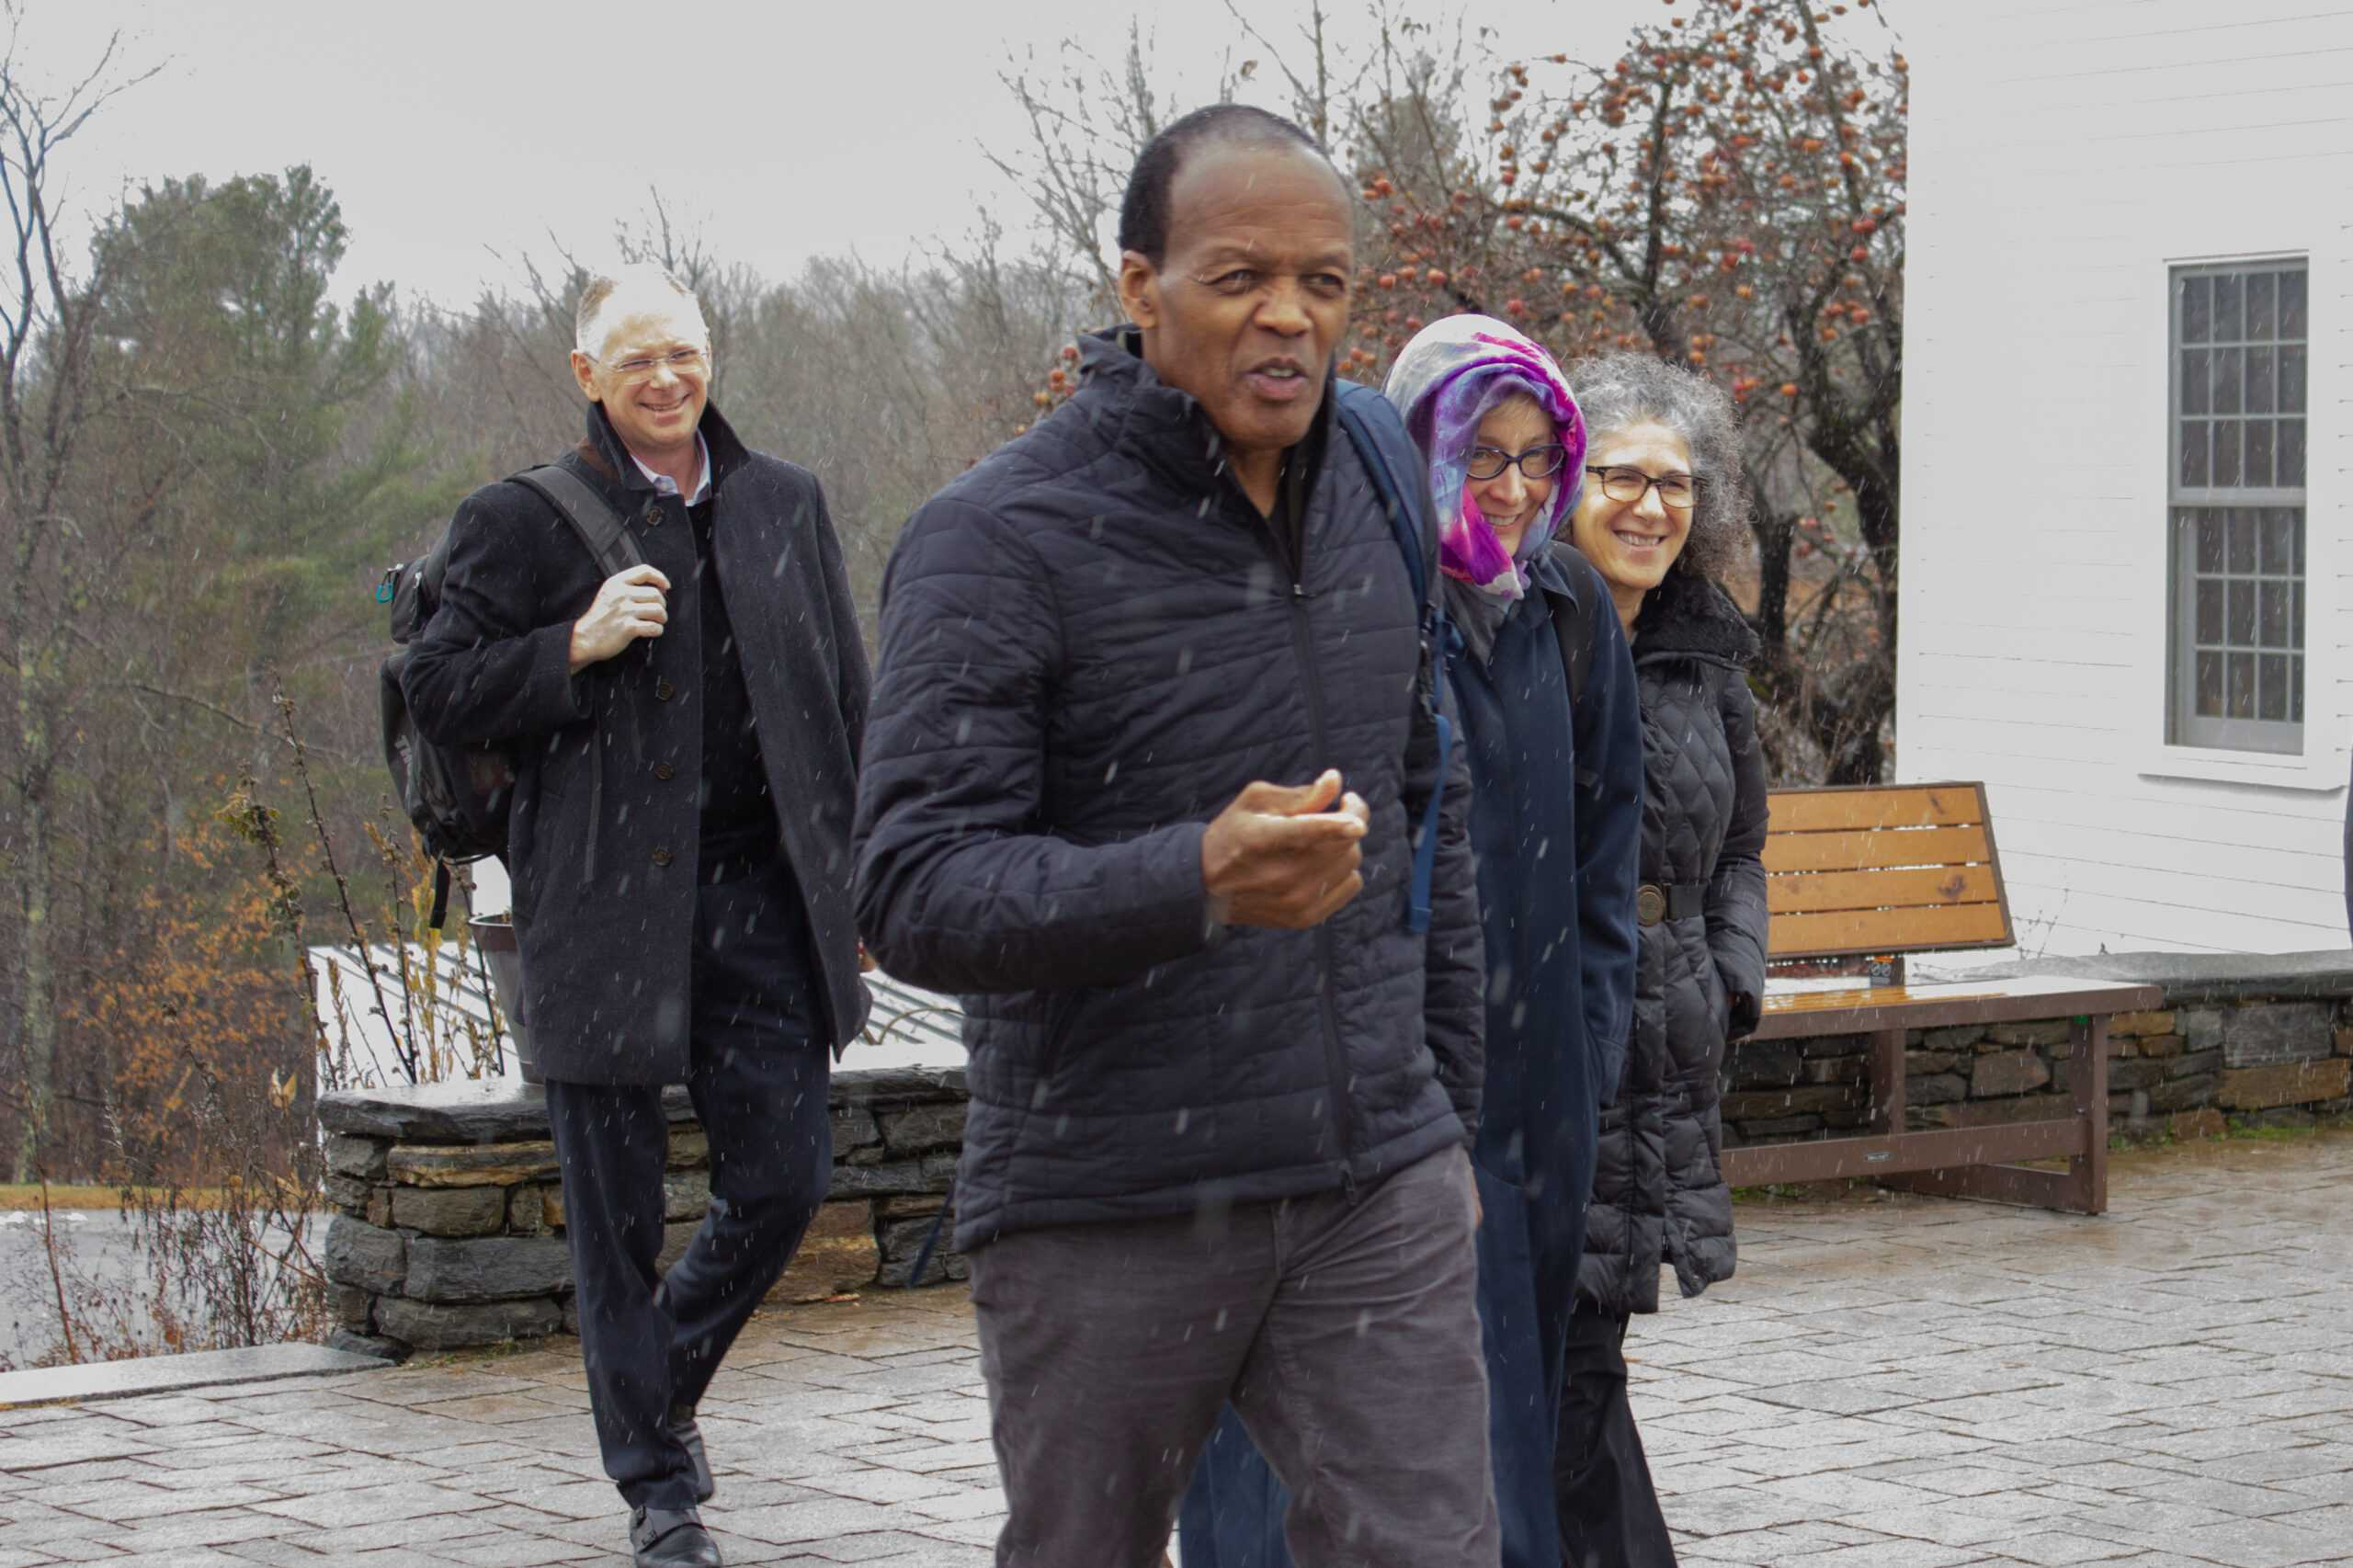 President M. Lee Pelton arrived on Marlboro's campus at 11:30 a.m. this morning accompanied by several other high level administration officials. Rachel Lo / Beacon Staff